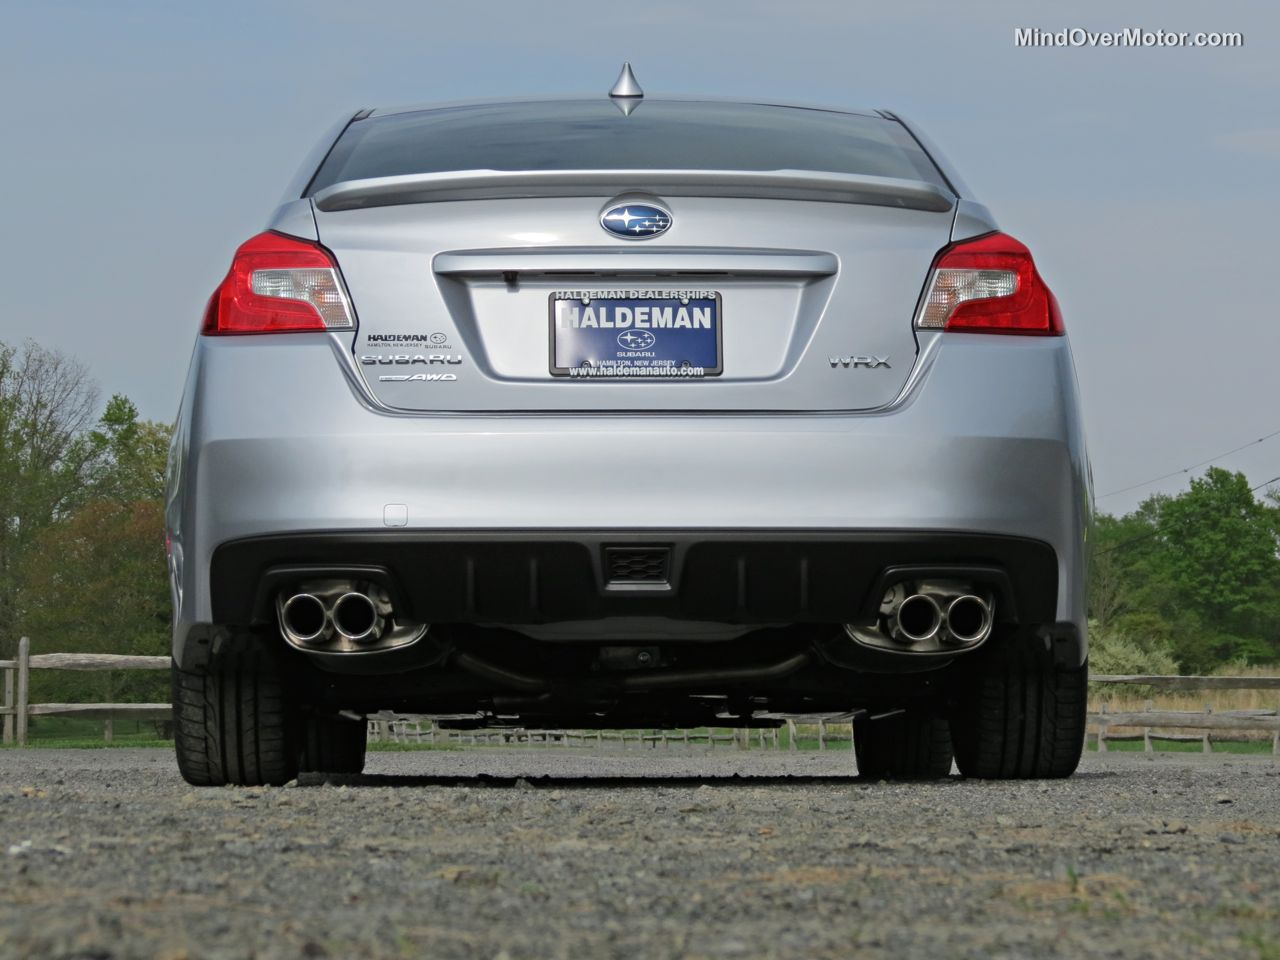 2015 Subaru WRX Rear View